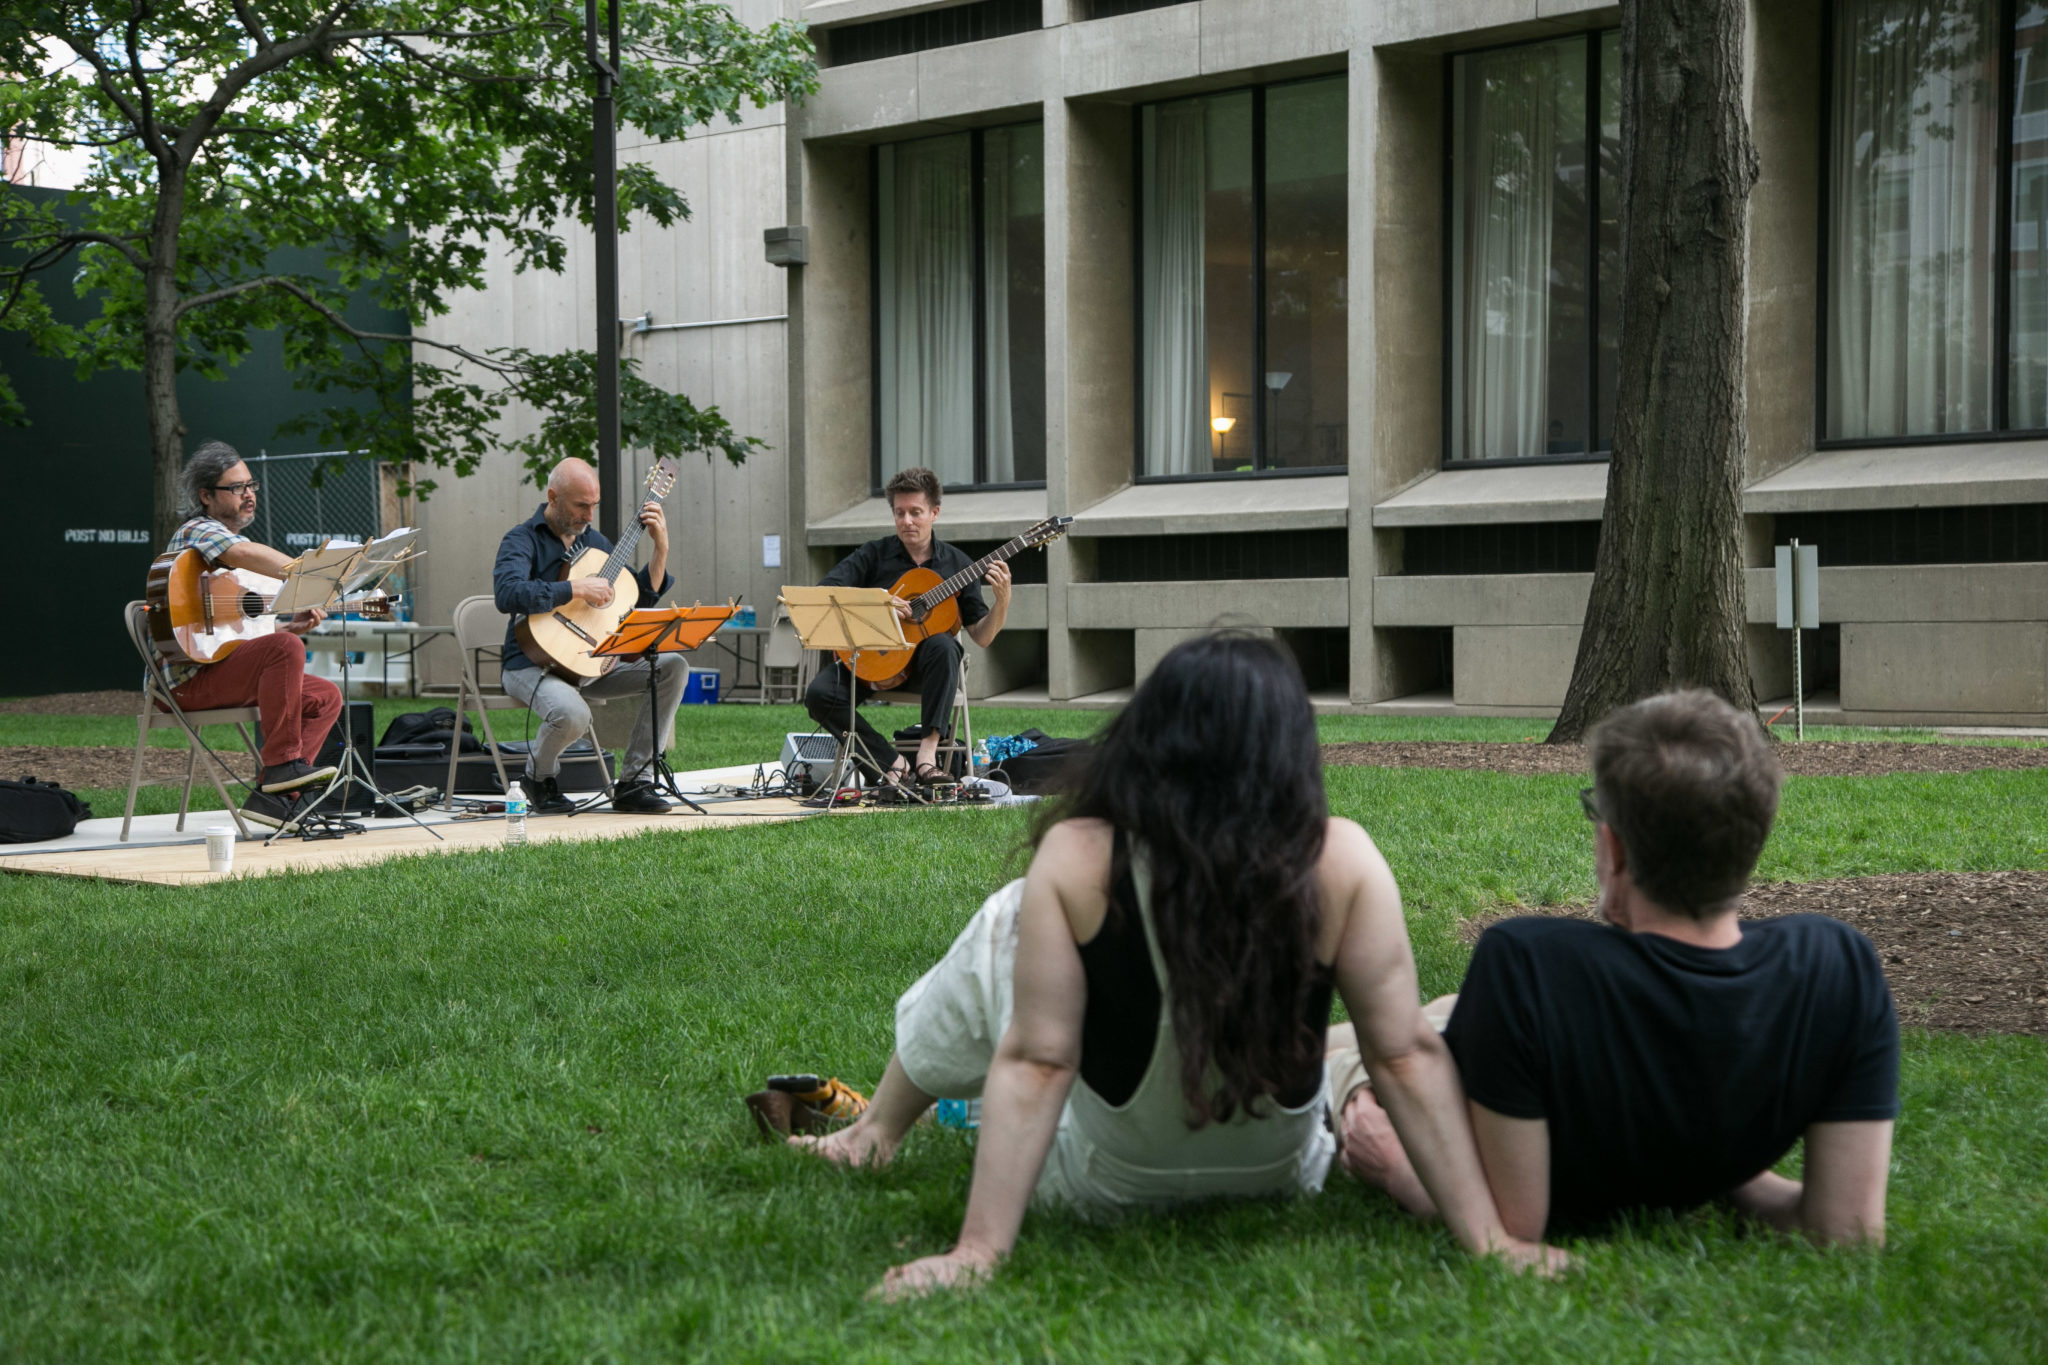 People listening to music on lawn